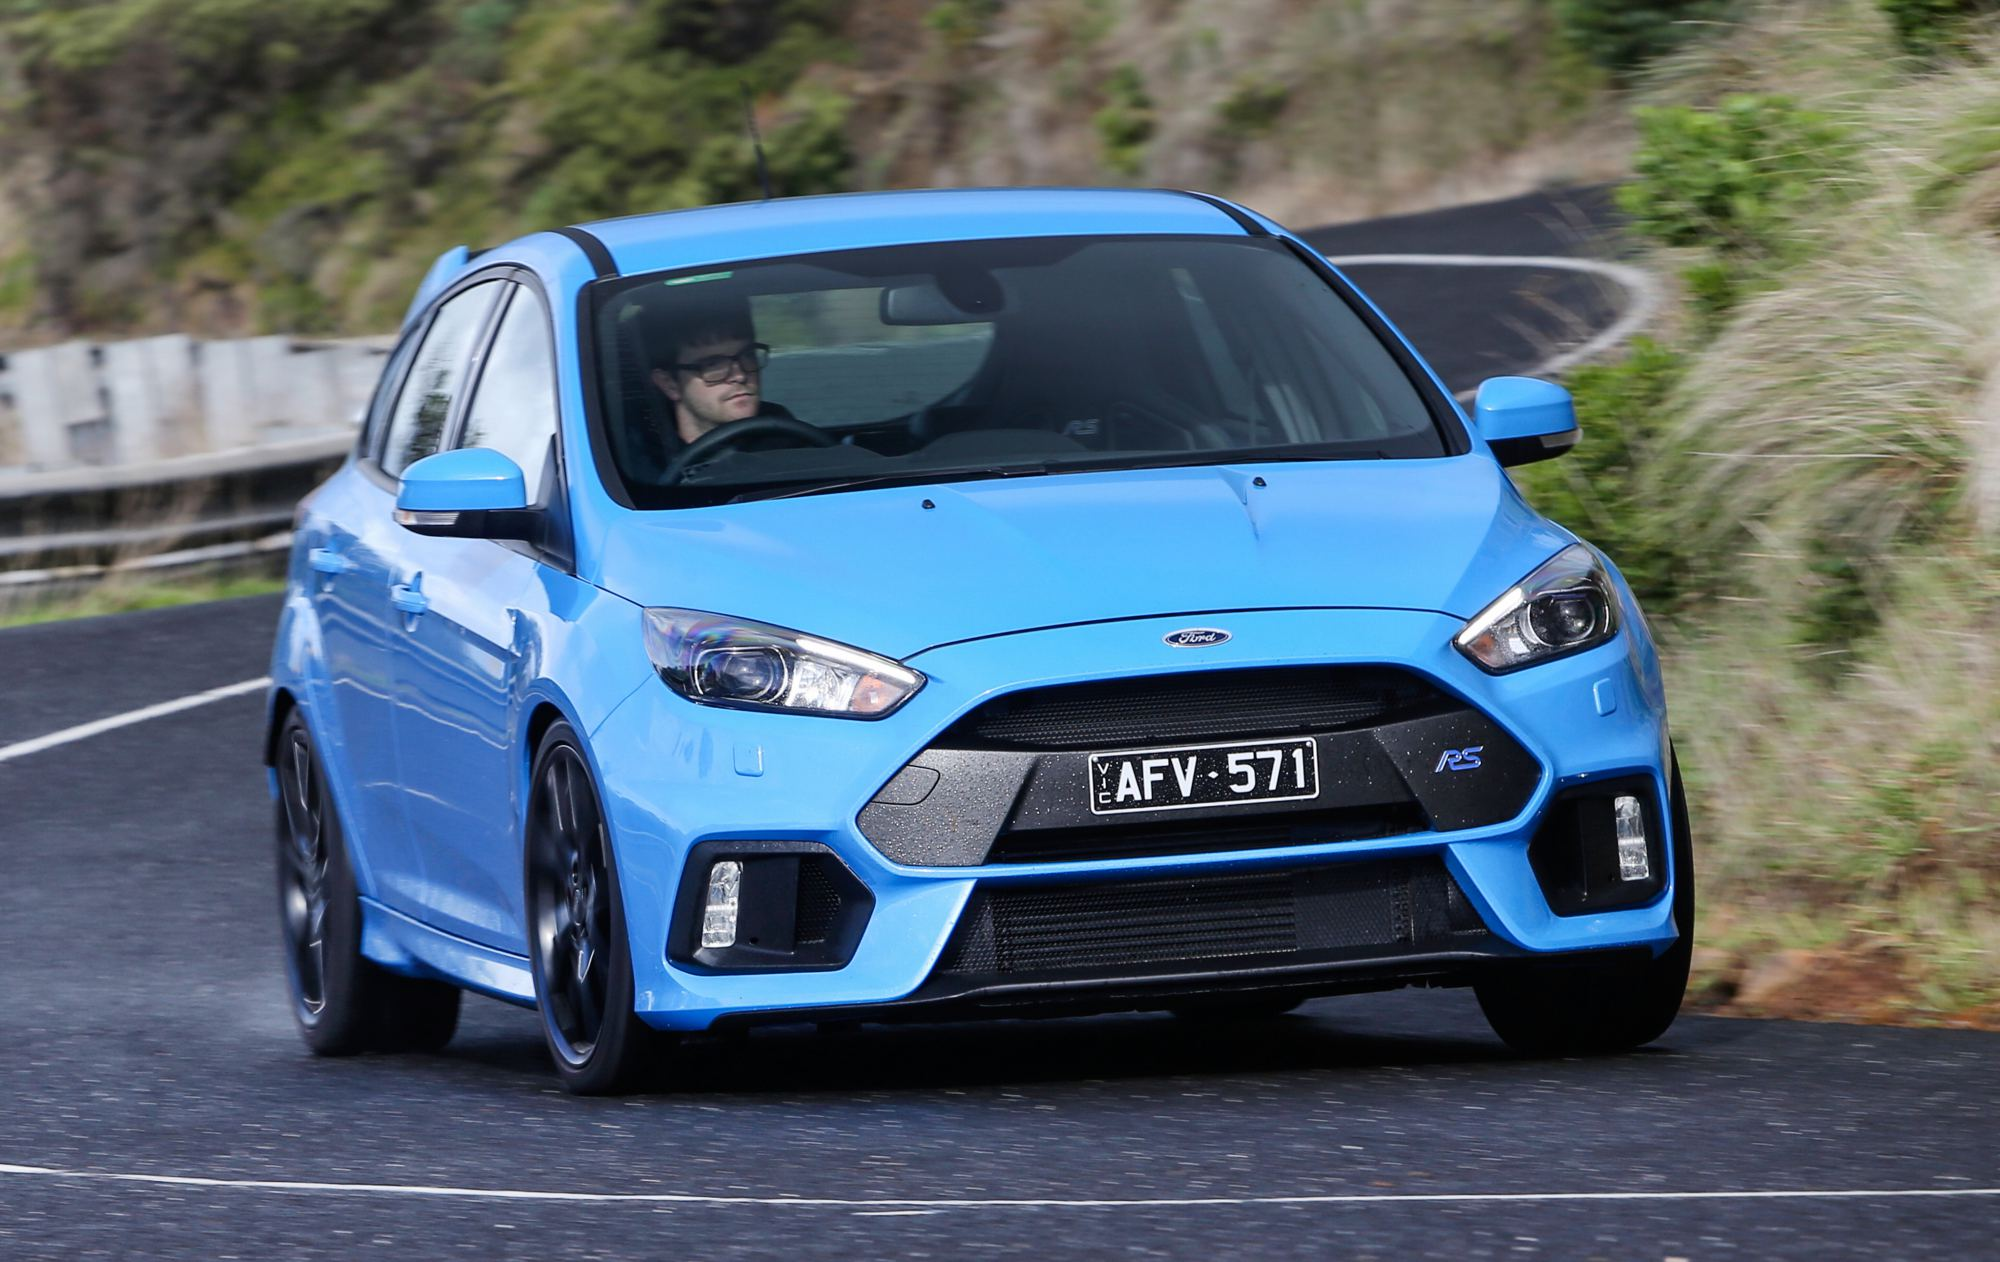 fully price arabia uae ksa focus gcc news rs drive fordfocusrs ford revealed saudi